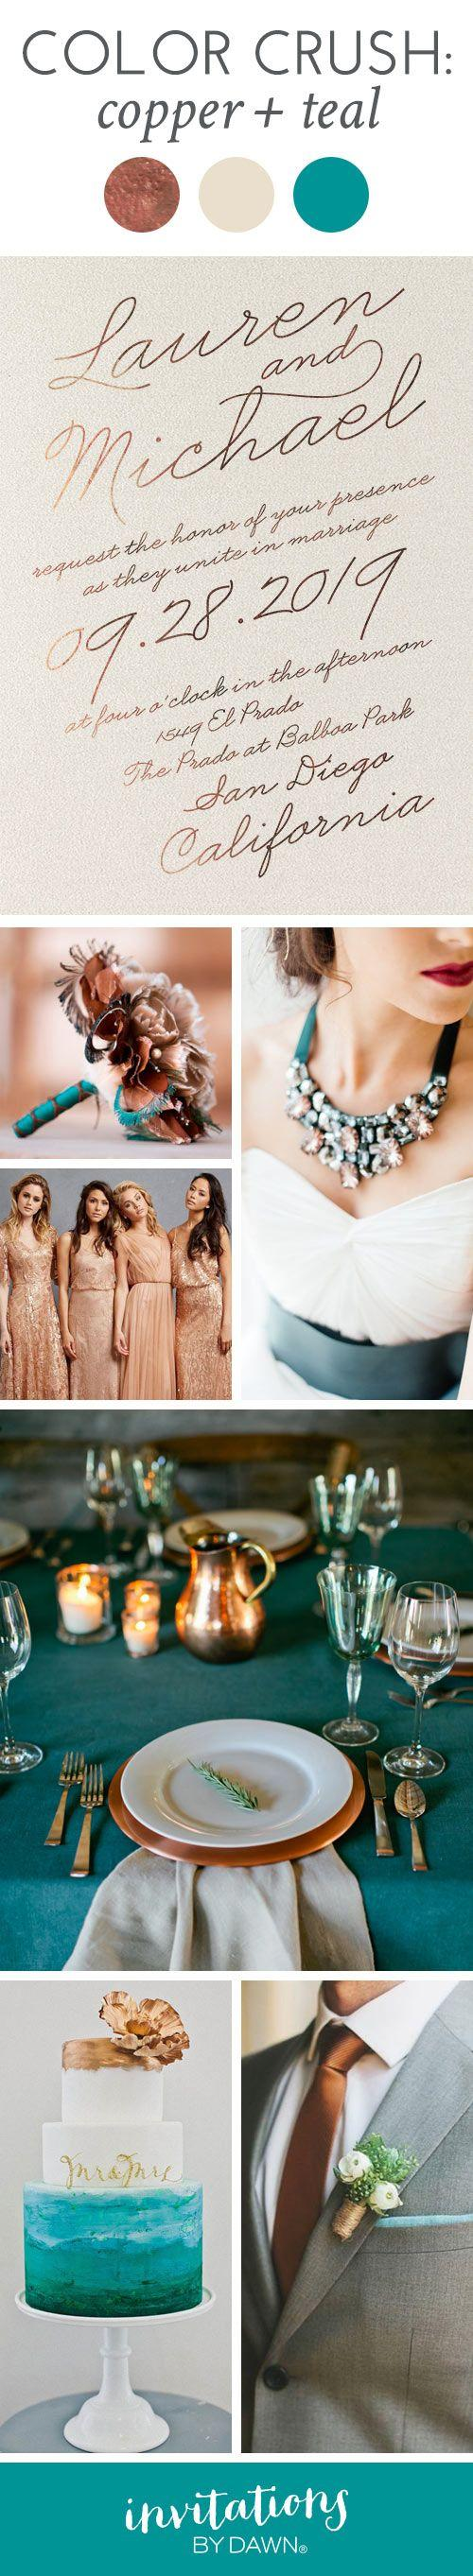 Wedding - Color Crush: Copper And Teal